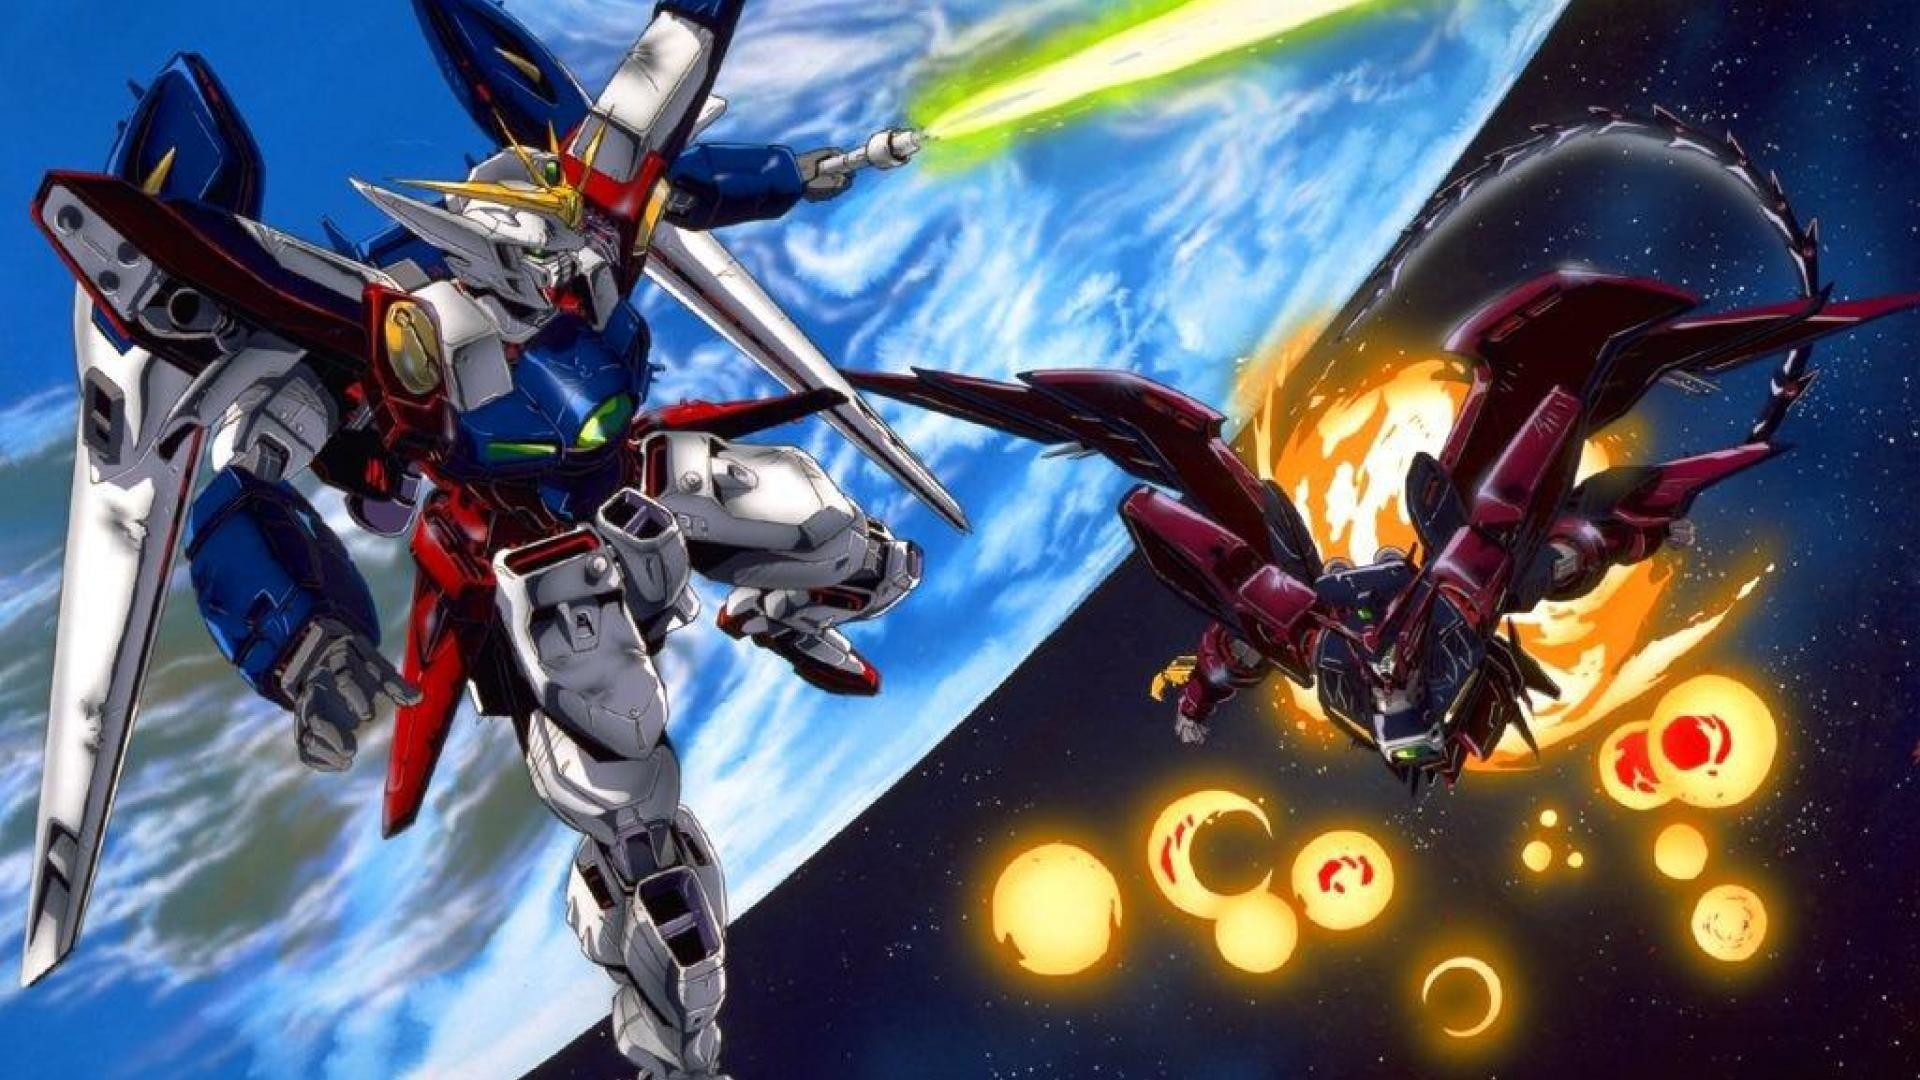 1920x1080 Anime Wallpapers Gundam HD 4K Download For Mobile iPhone & PC